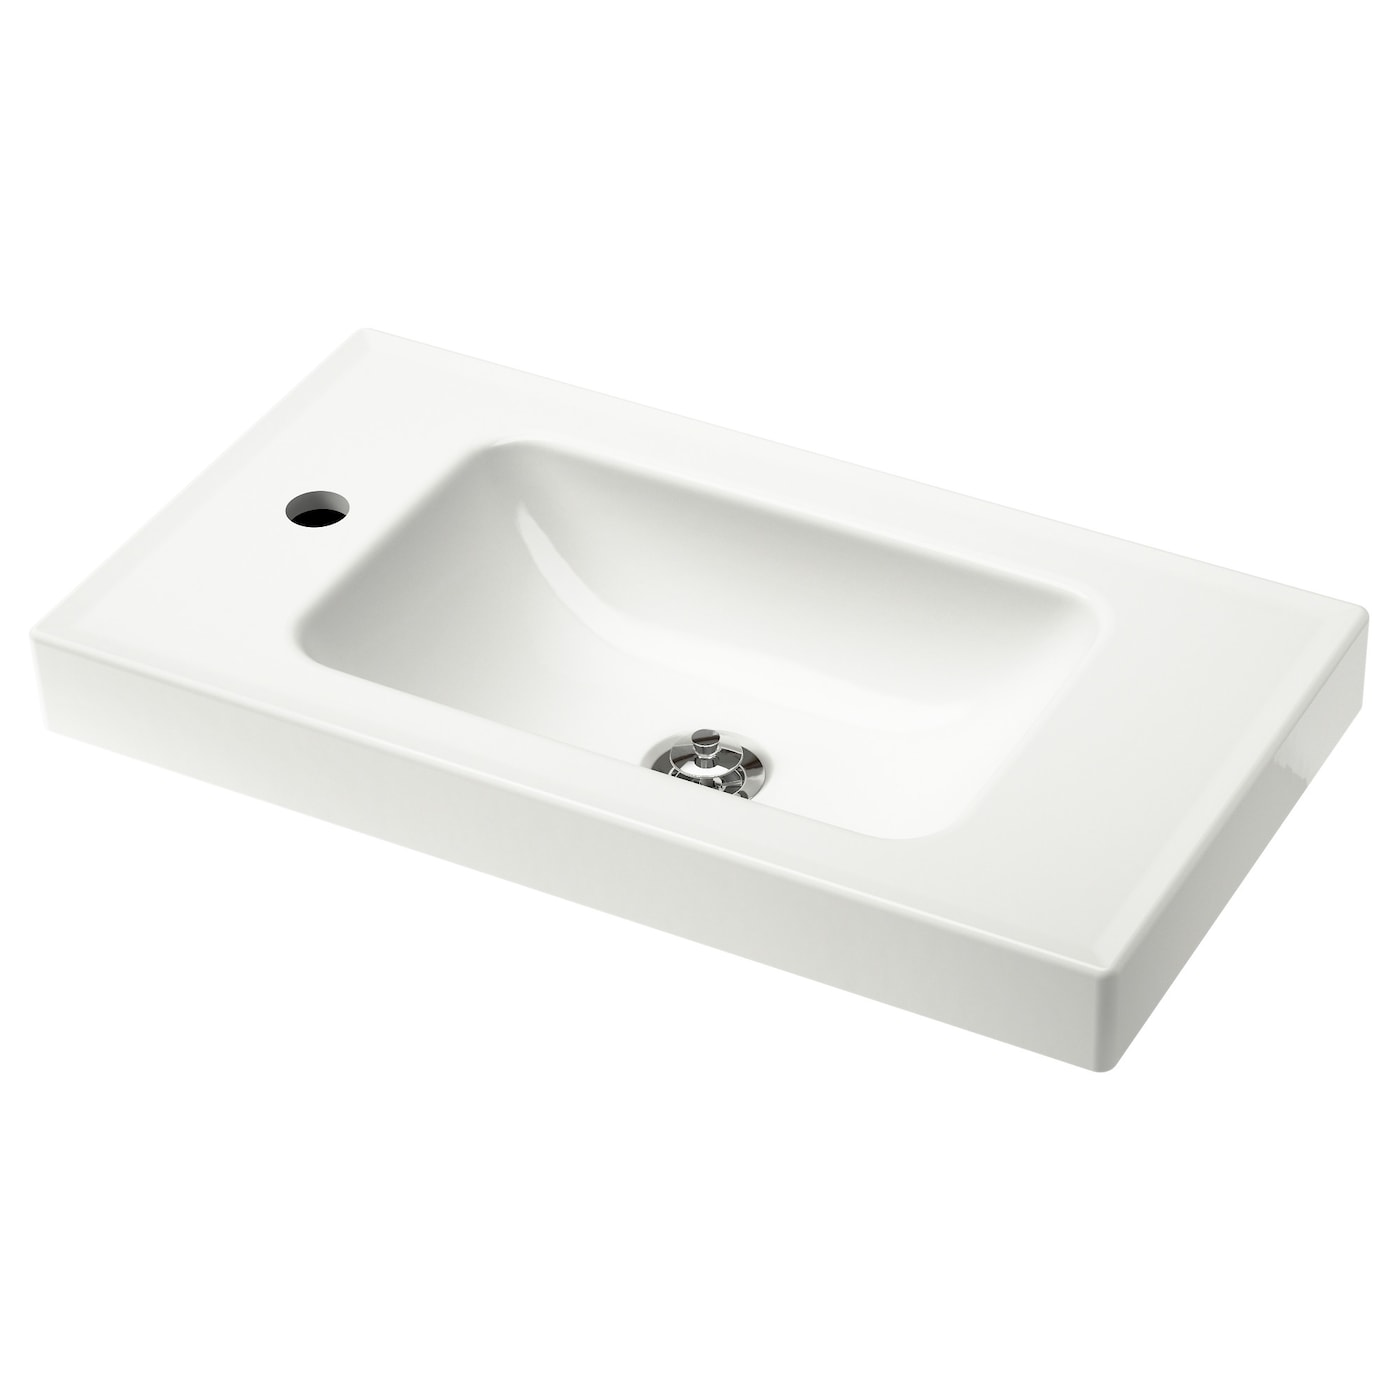 IKEA HAGAVIKEN single wash-basin 10 year guarantee. Read about the terms in the guarantee brochure.